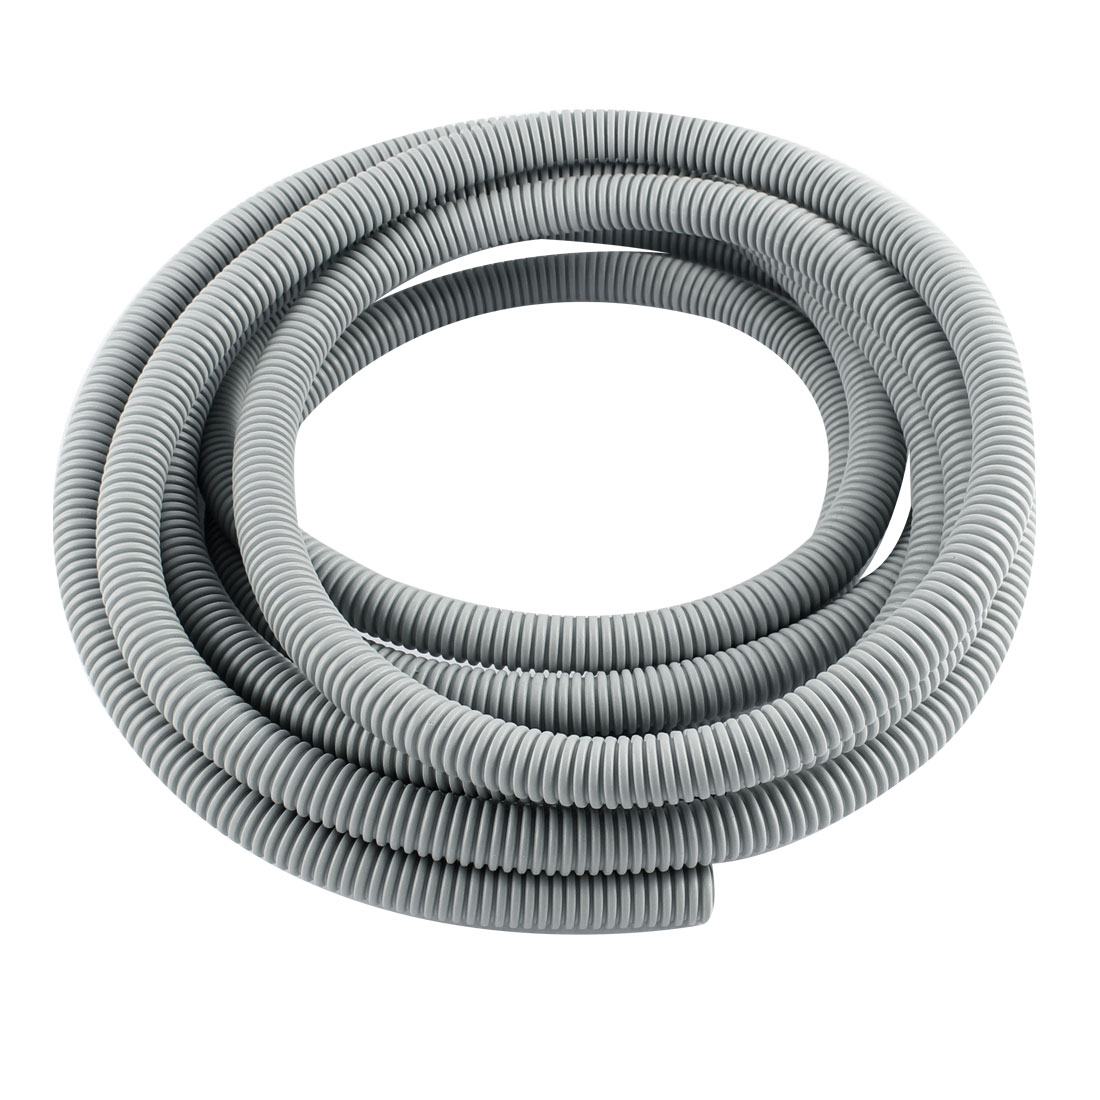 12mm x 16mm Dia Flexible Bellows Hose Cable Conduit Corrugated Tube Tubing Pipe 16Ft 5m Length